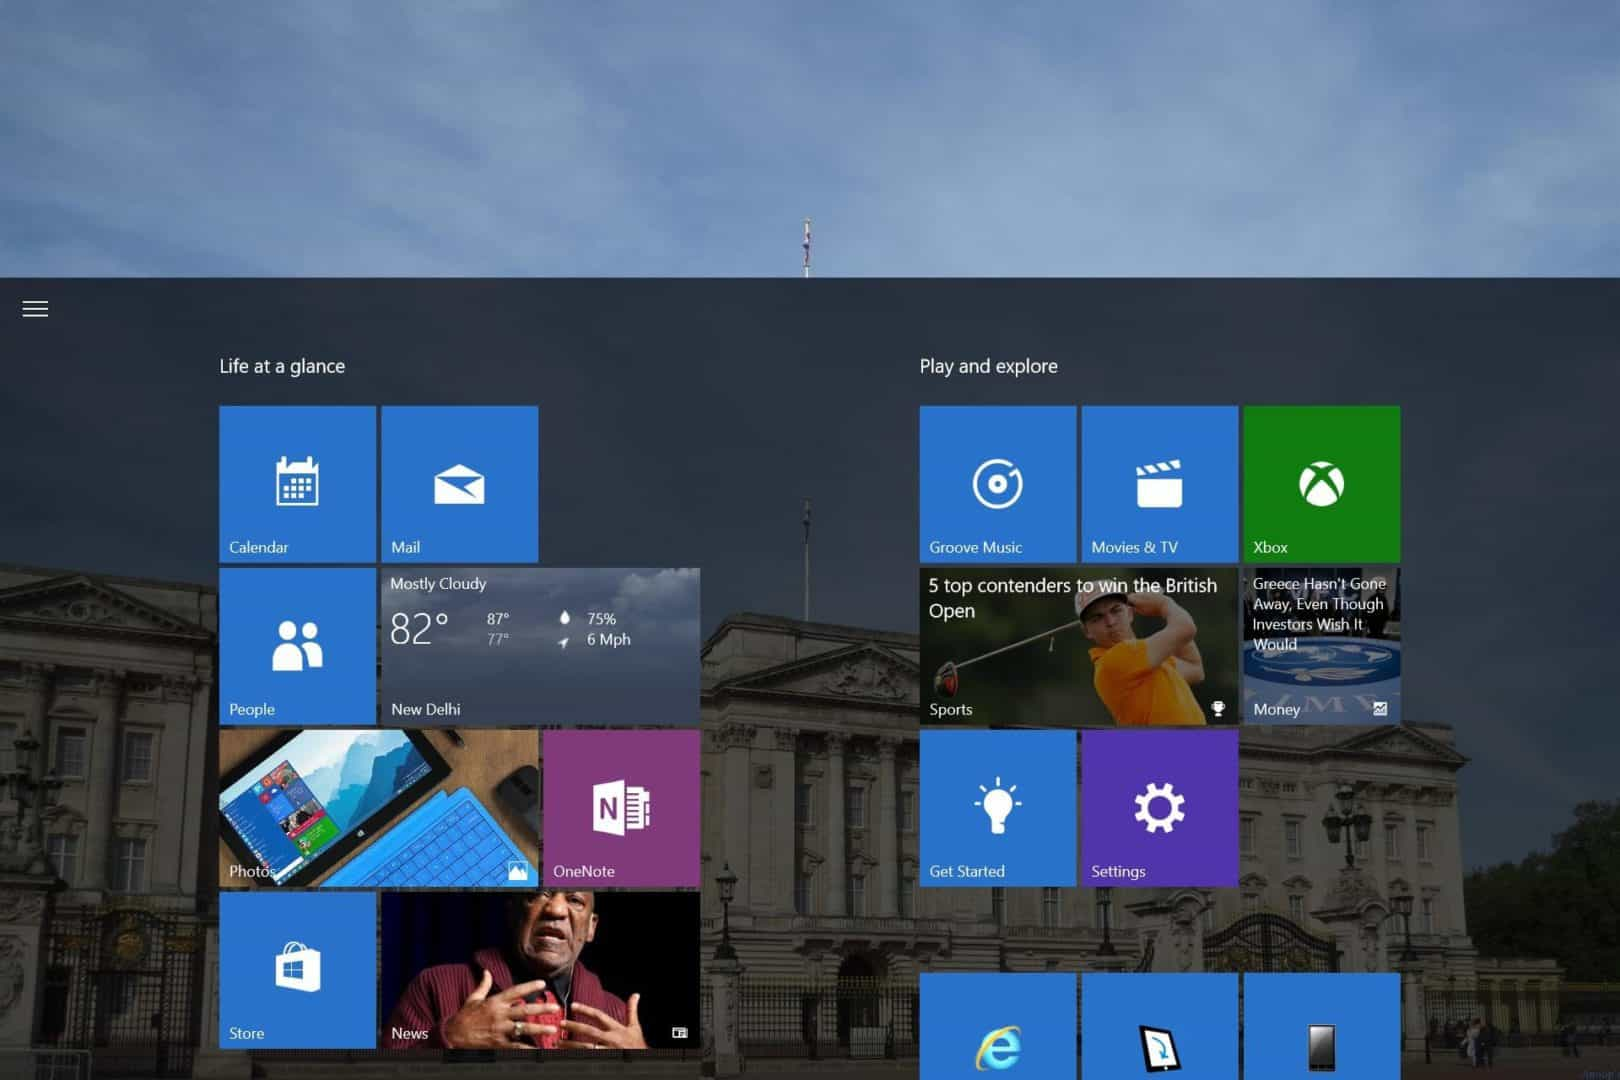 So Here is the Latest and Last Windows 10 Insiders Build 10240 Before RTM 1